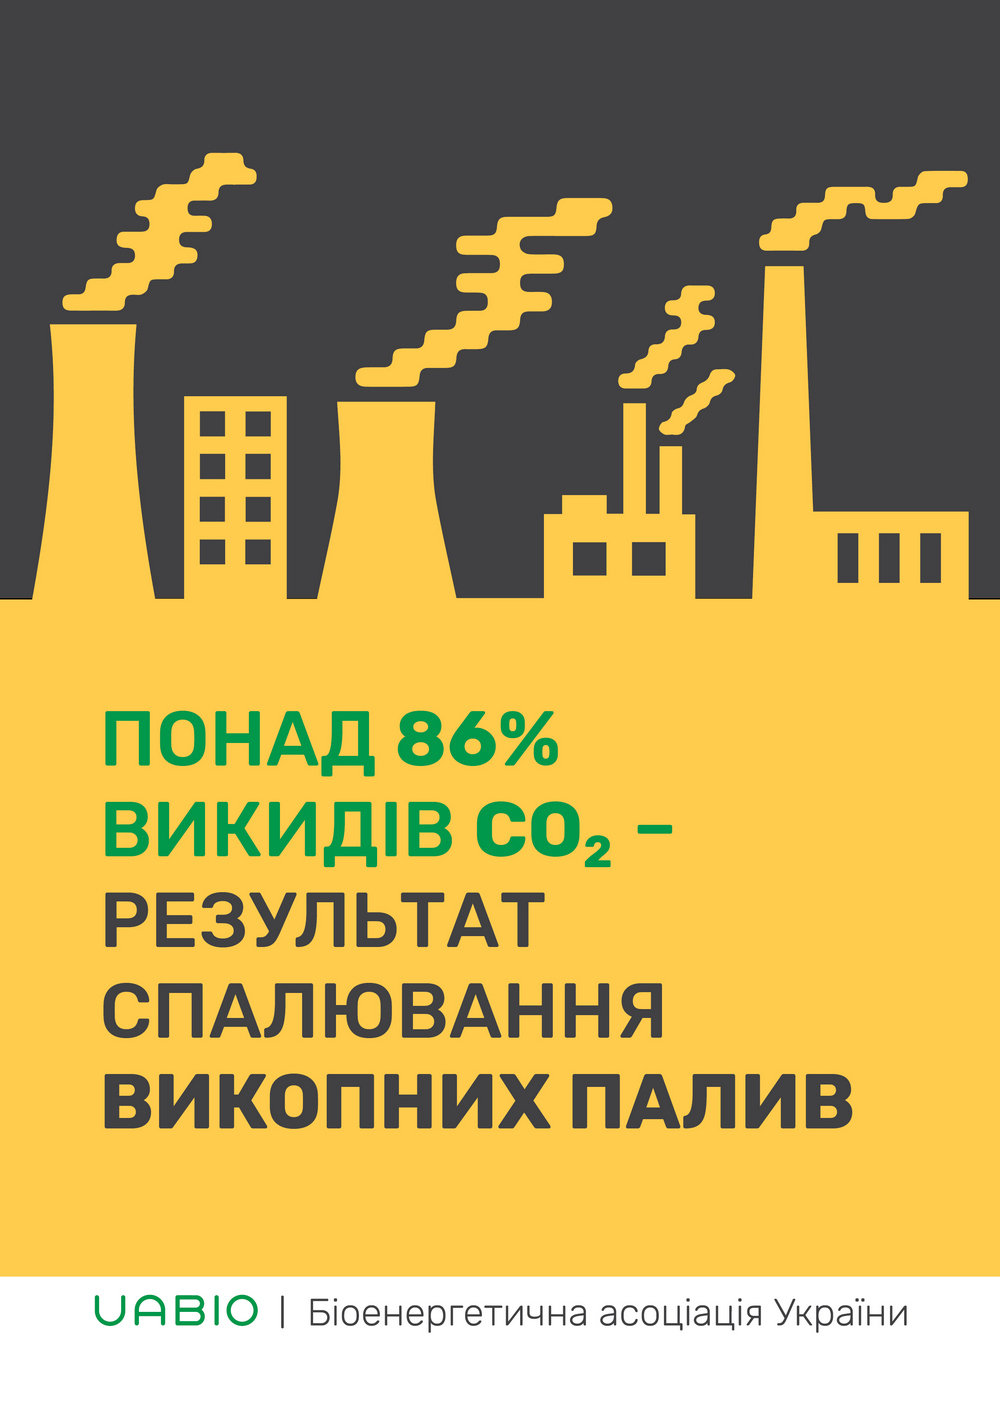 ukrainian-bioenergy-day-campaign-2__.jpg